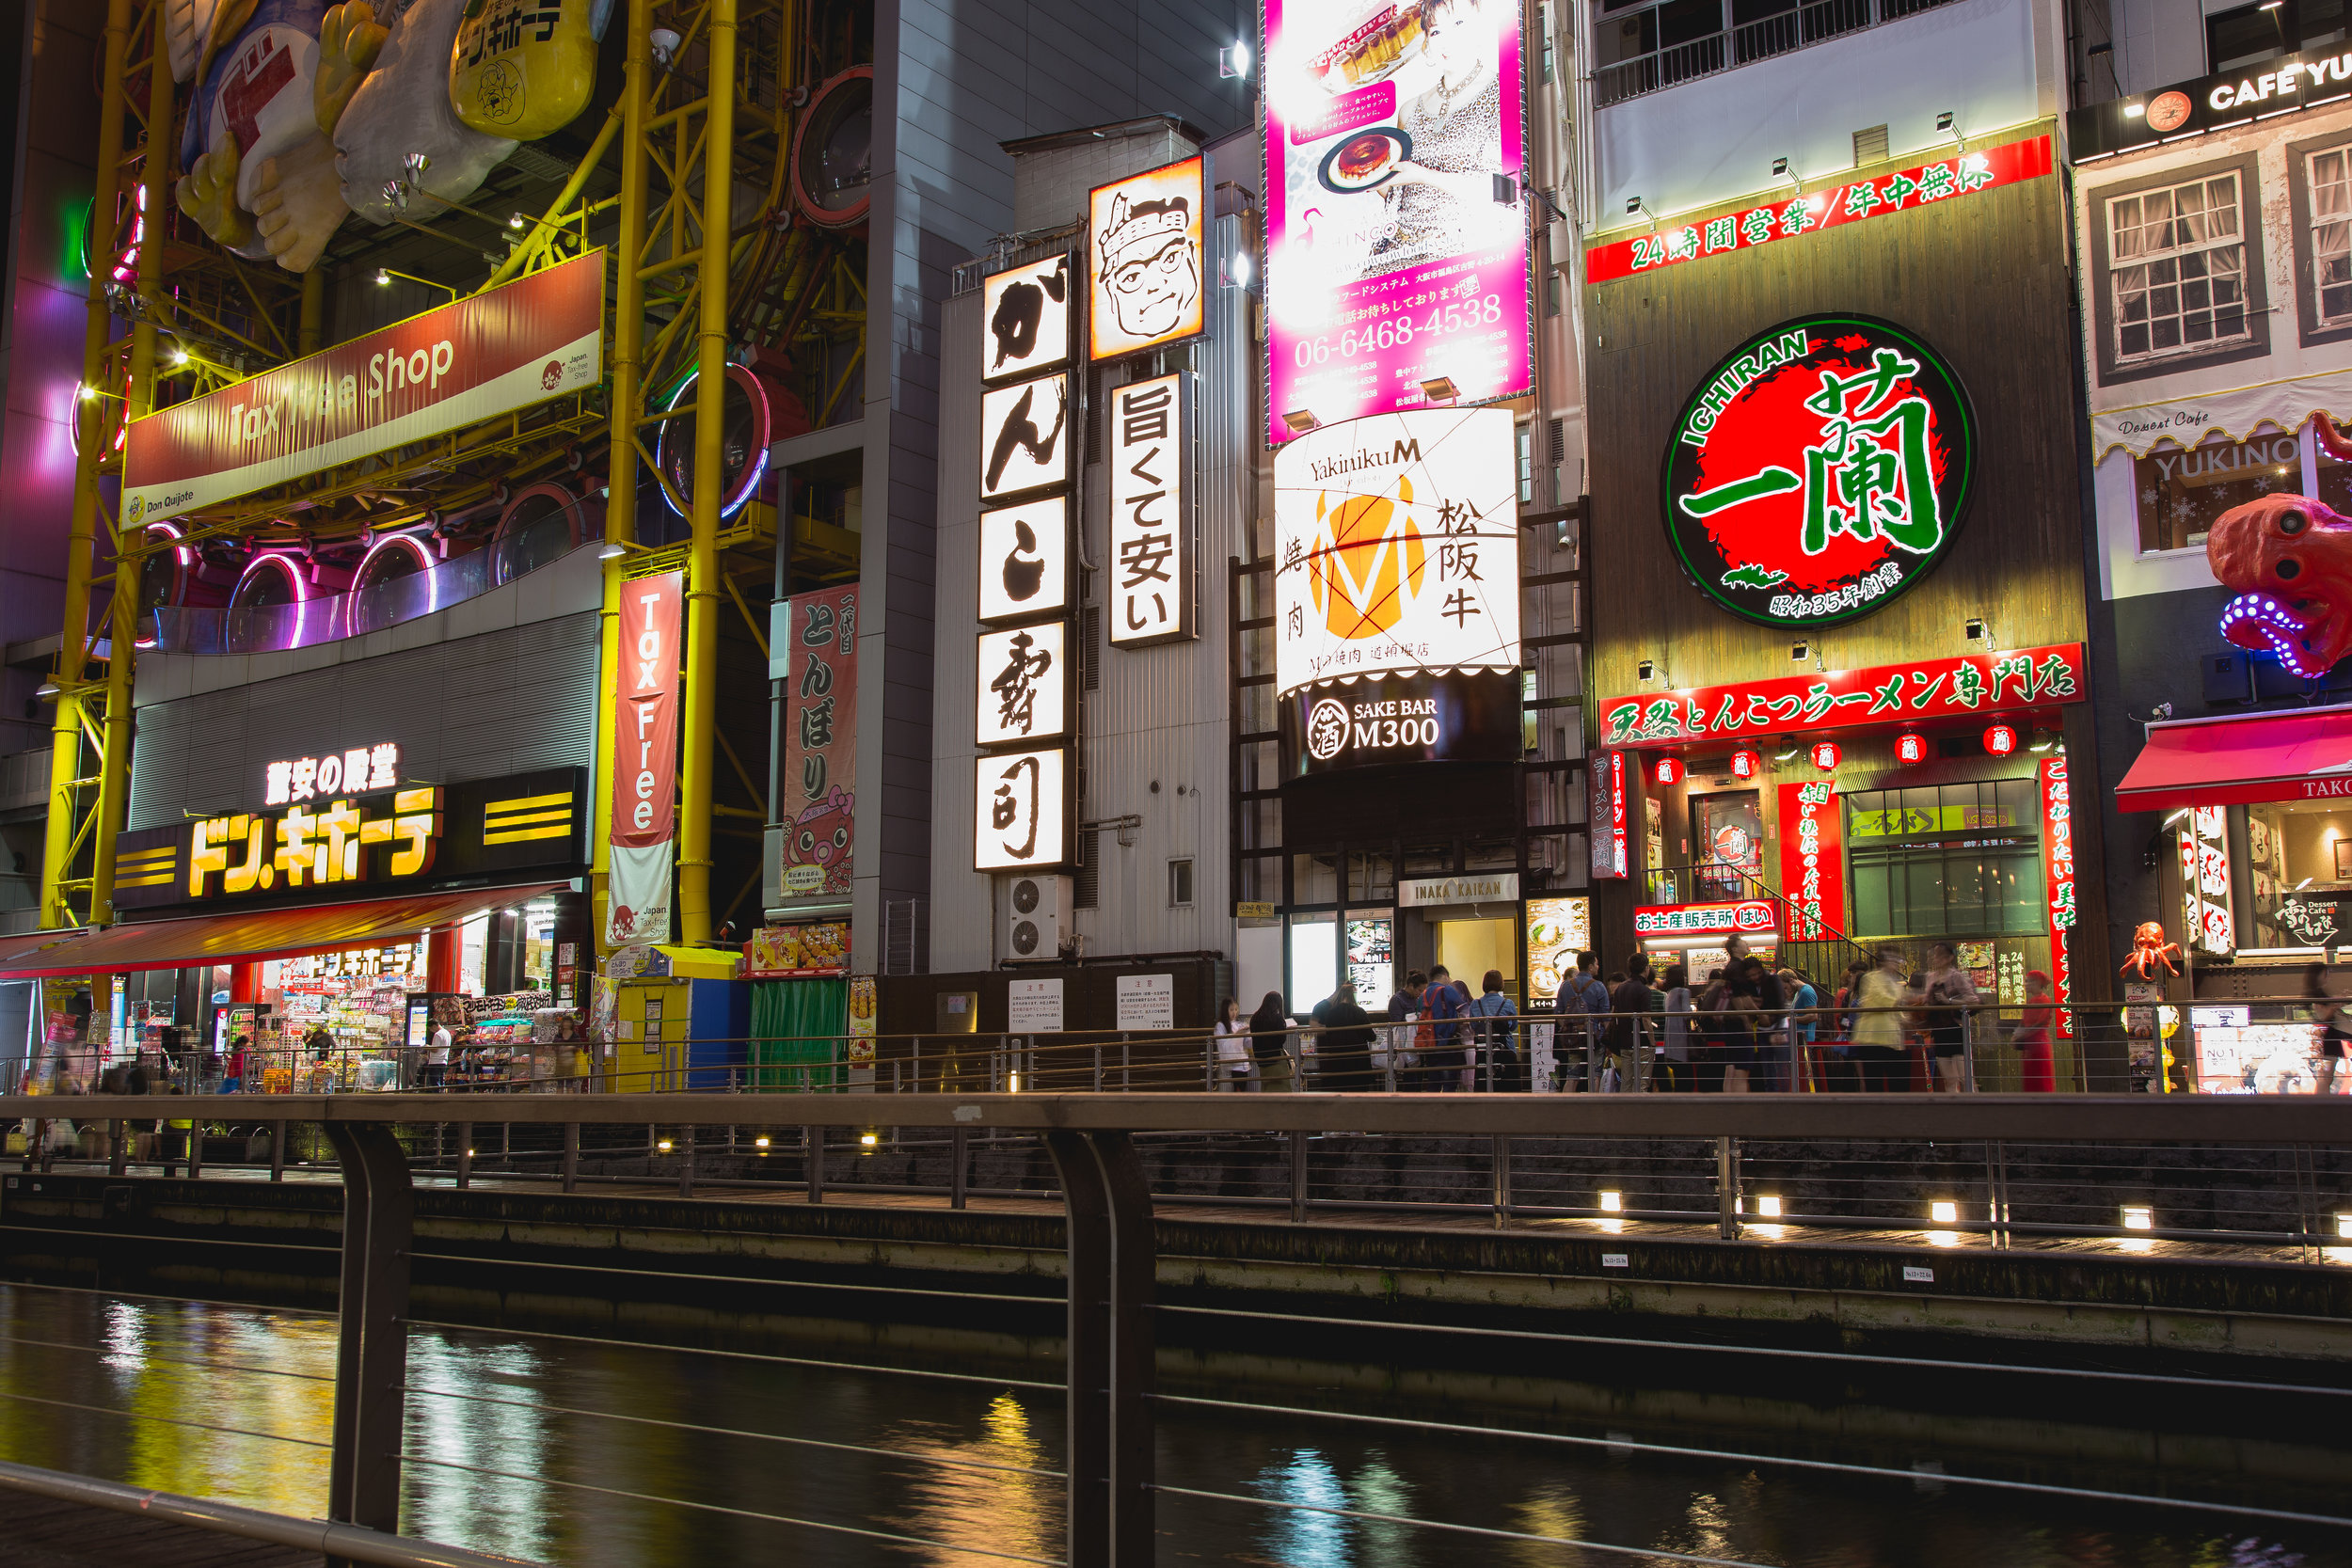 Store fronts beckoning for patrons in Osaka